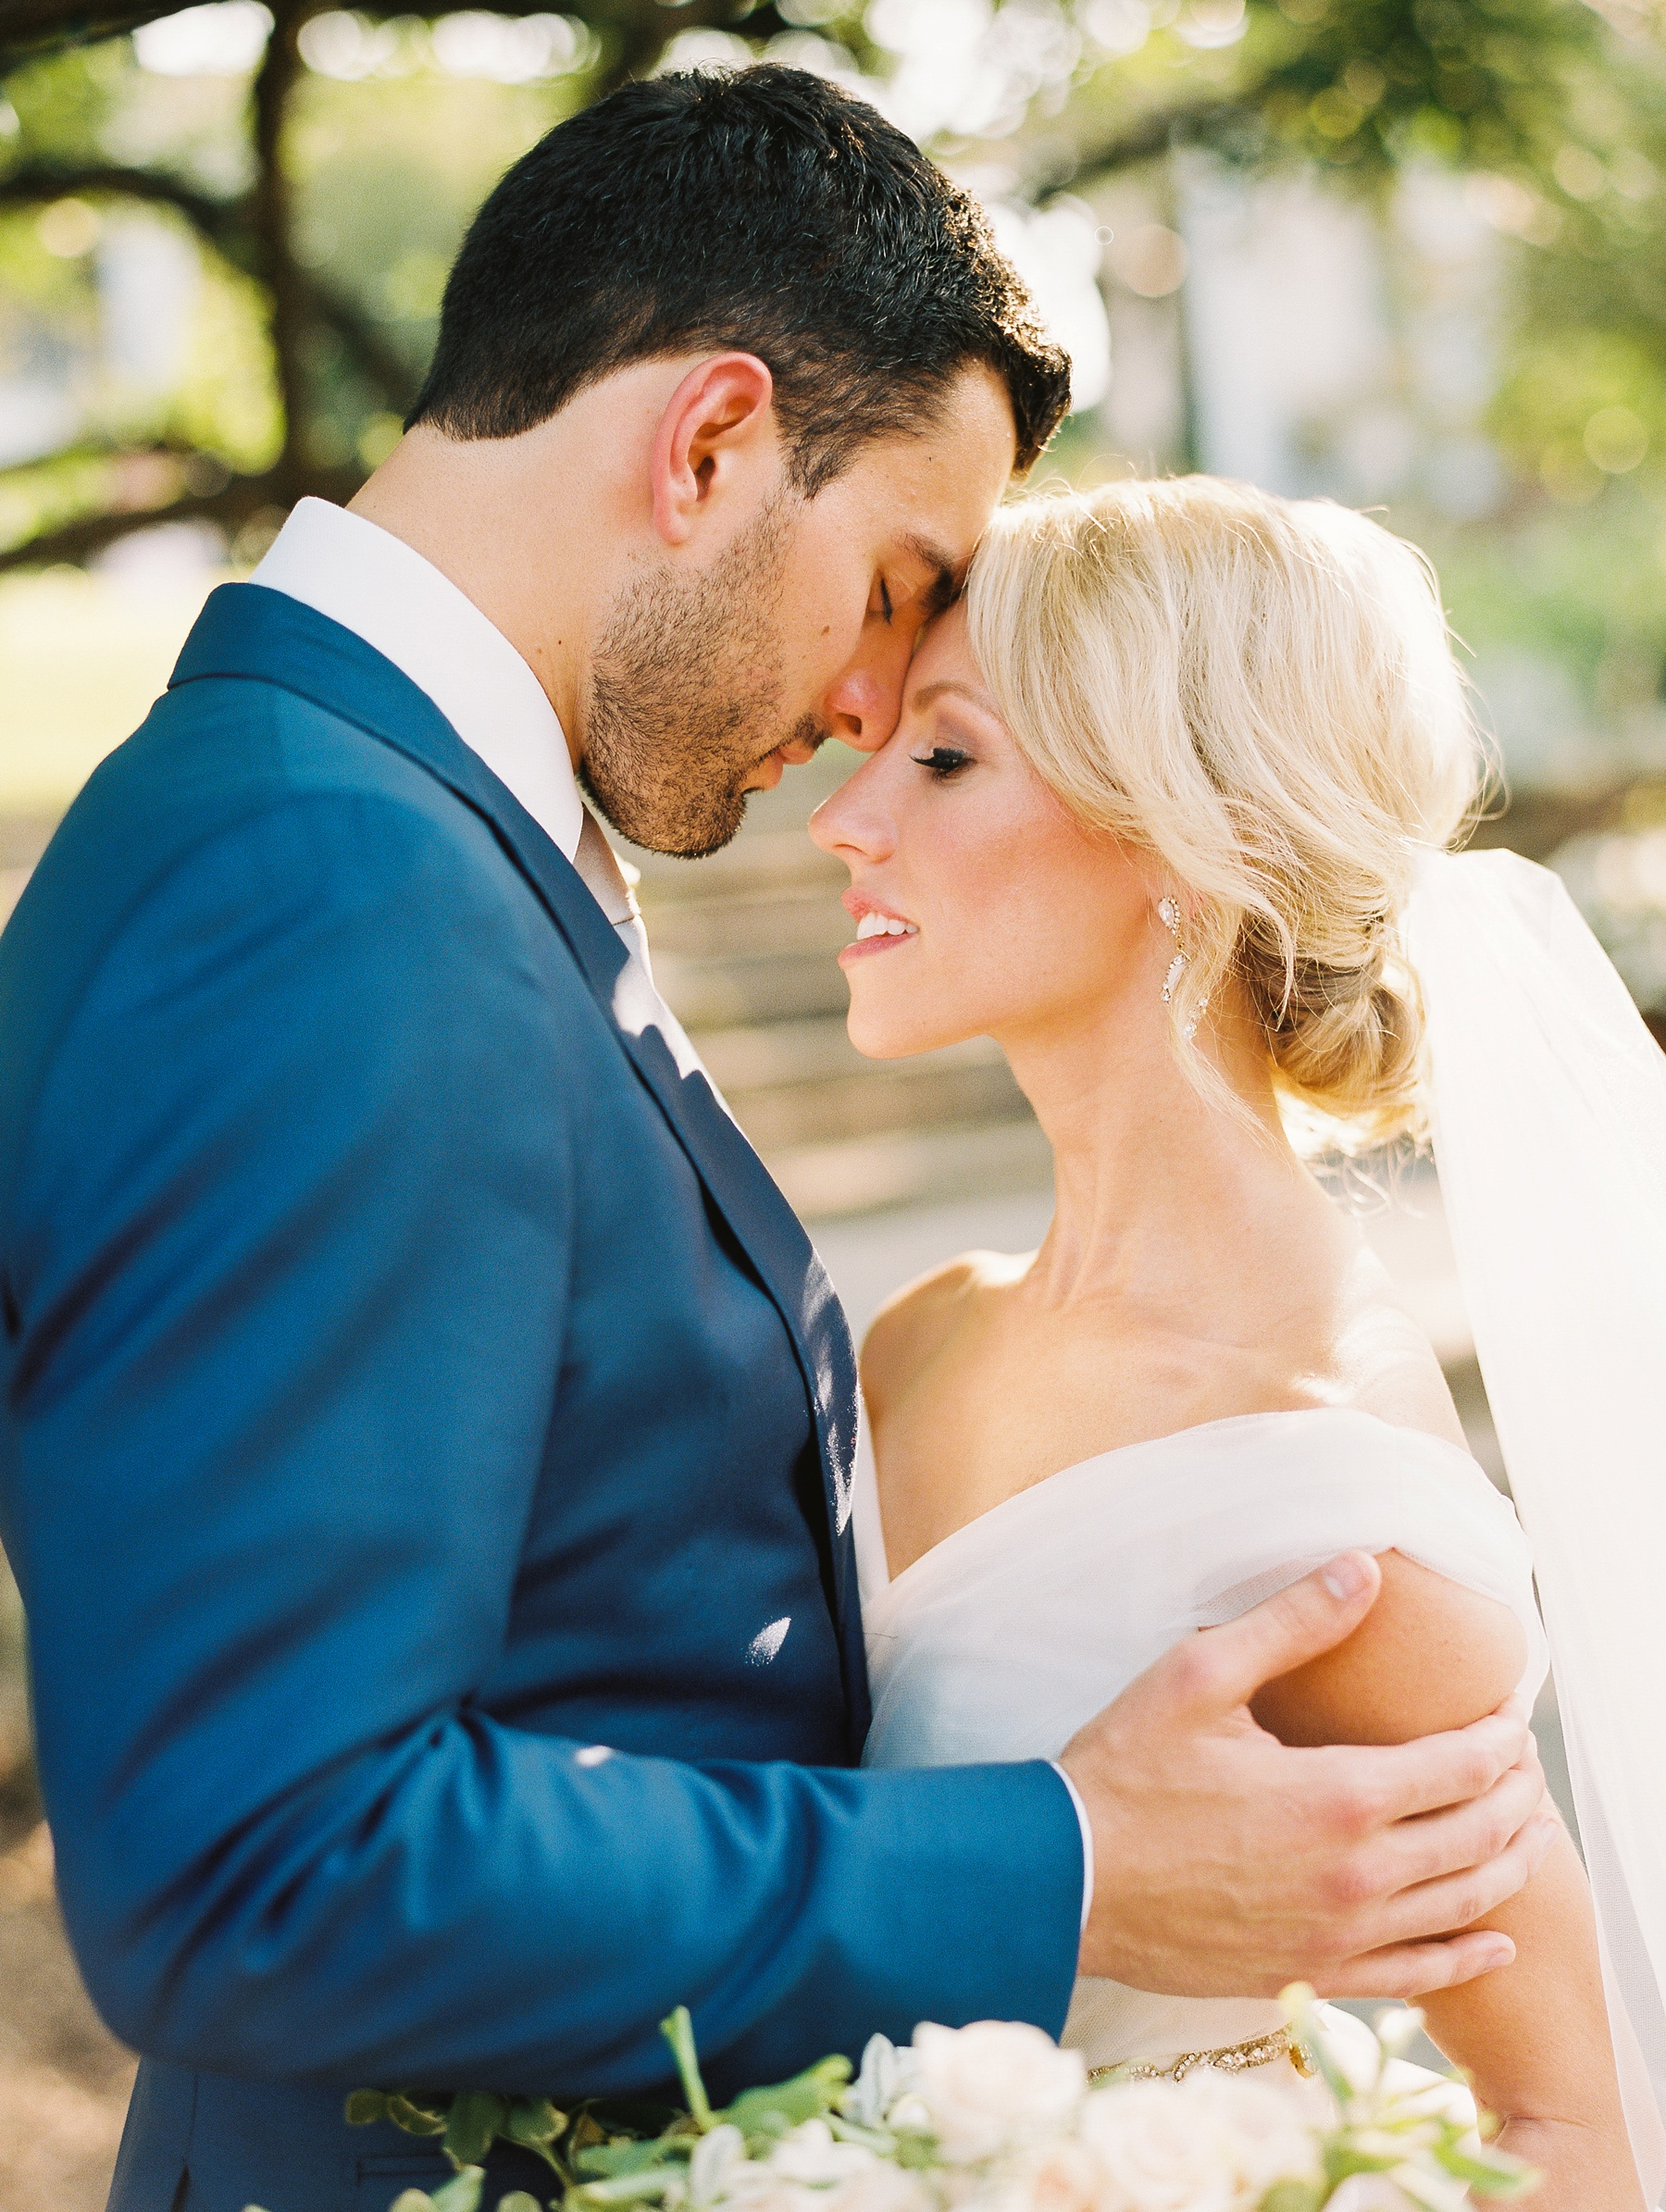 CMT Music City Jessica Mack and Andreas Plackis Wedding_1434.jpg